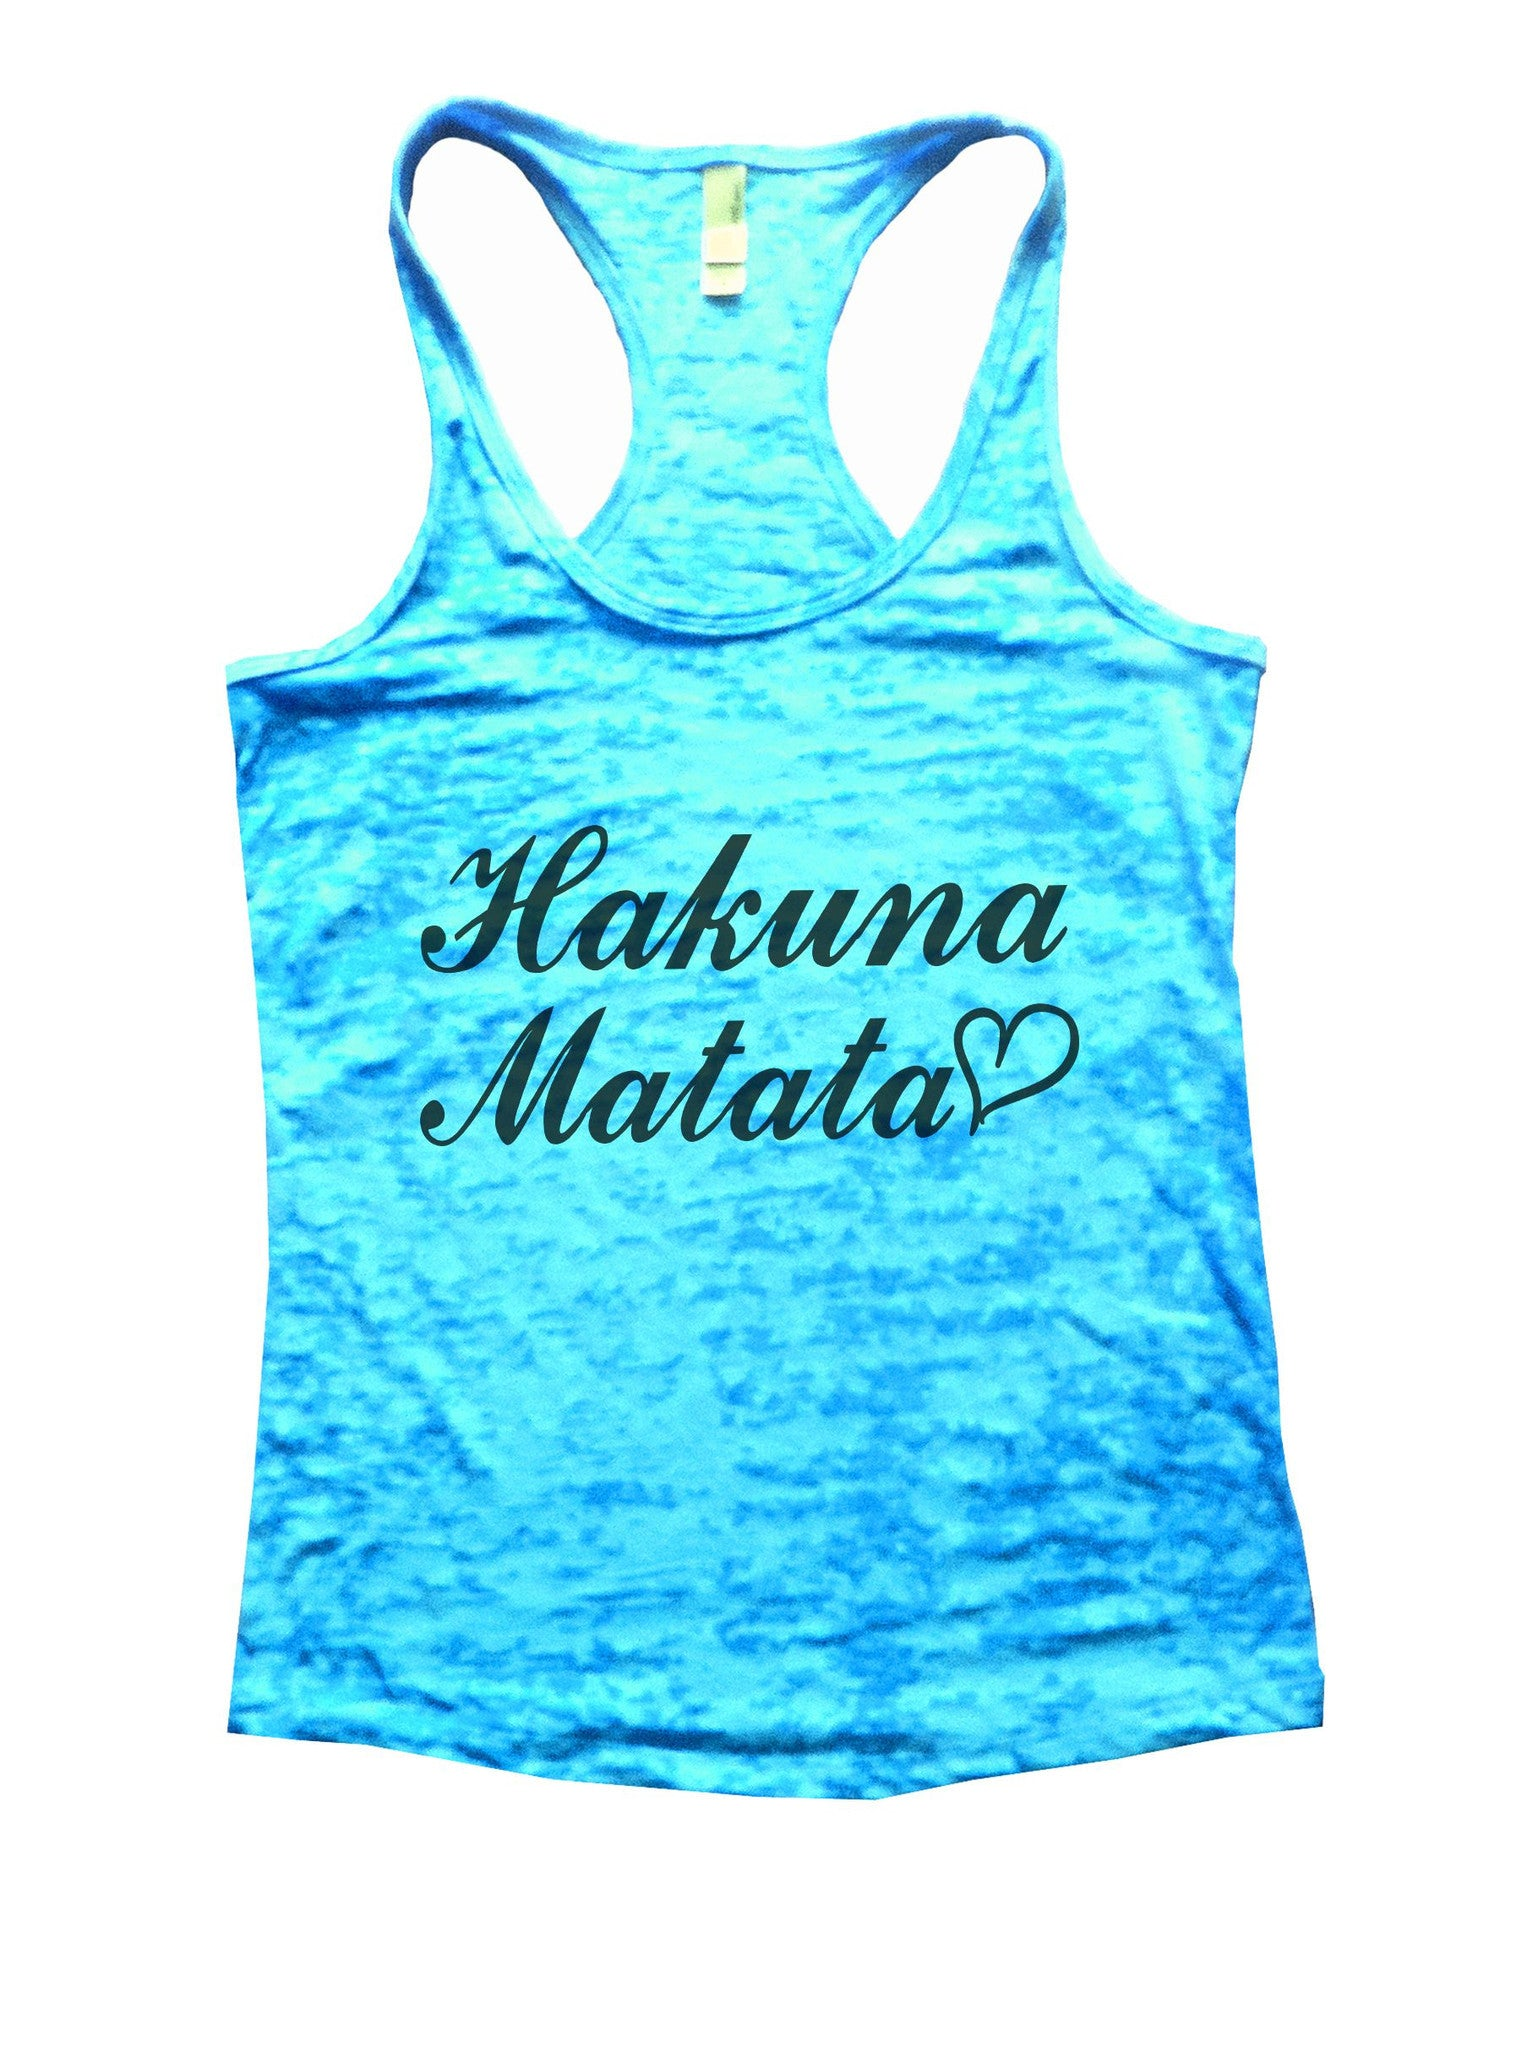 Hakuna Matata Burnout Tank Top By BurnoutTankTops.com - 937 - Funny Shirts Tank Tops Burnouts and Triblends  - 4